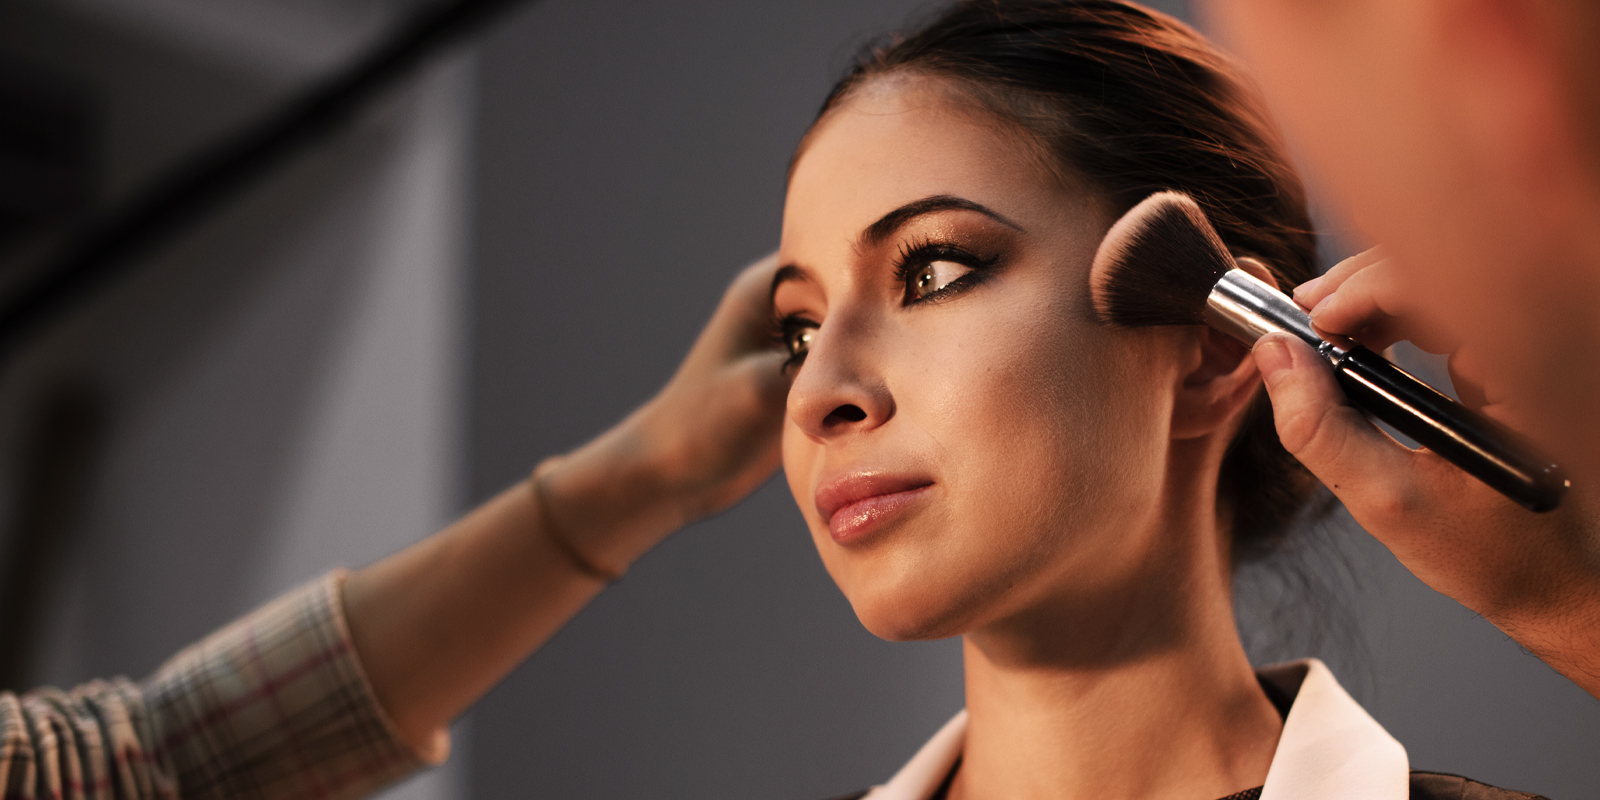 An image of a person getting making applied on her